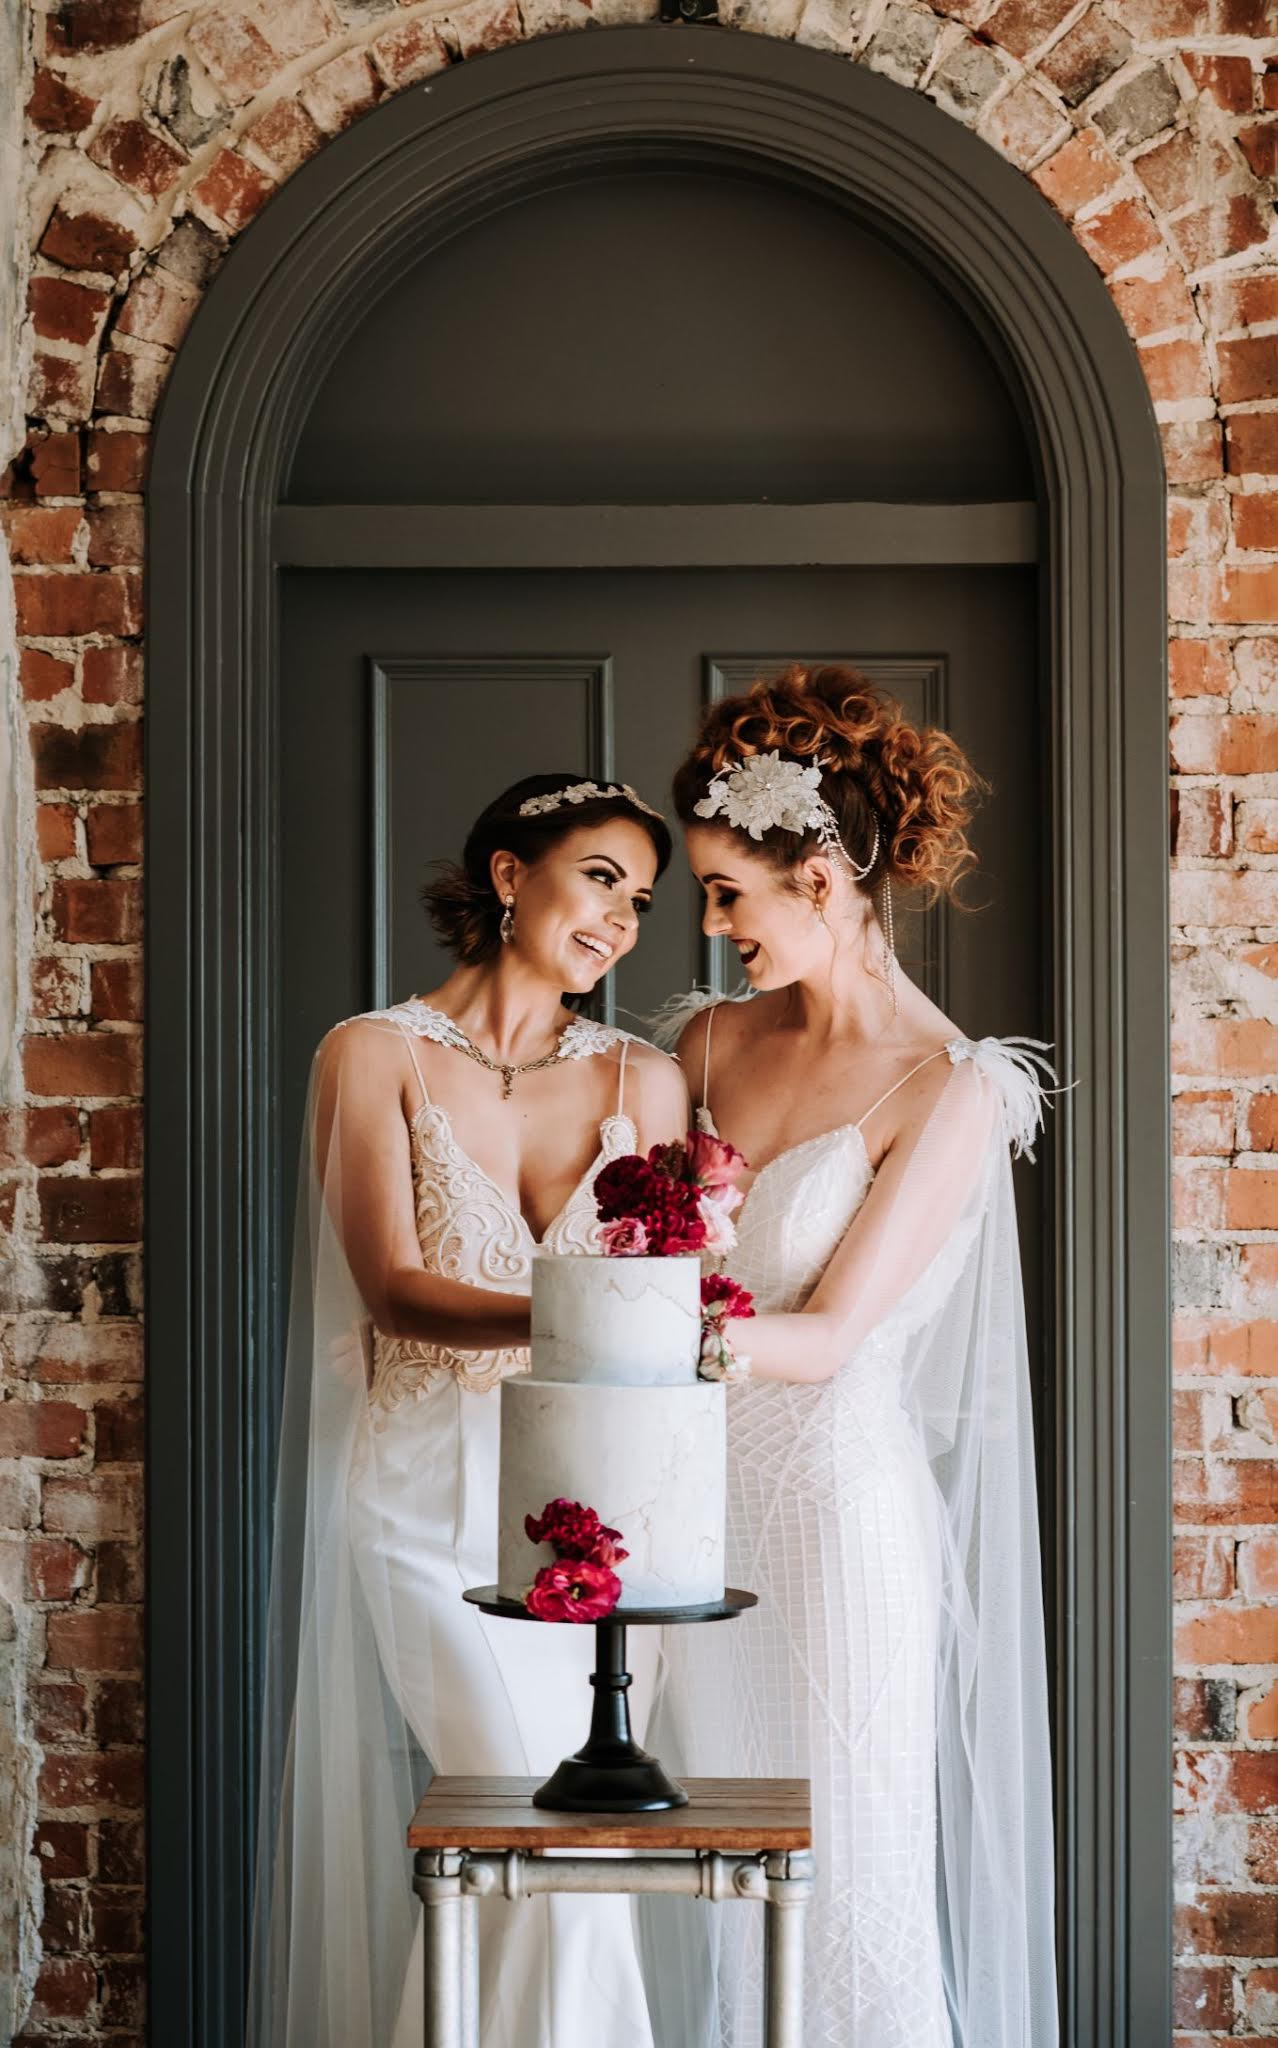 STYLED: UNVEILED INDUSTRIAL |  MARRIED AF WEDDING INSPIRATION PERTH WA